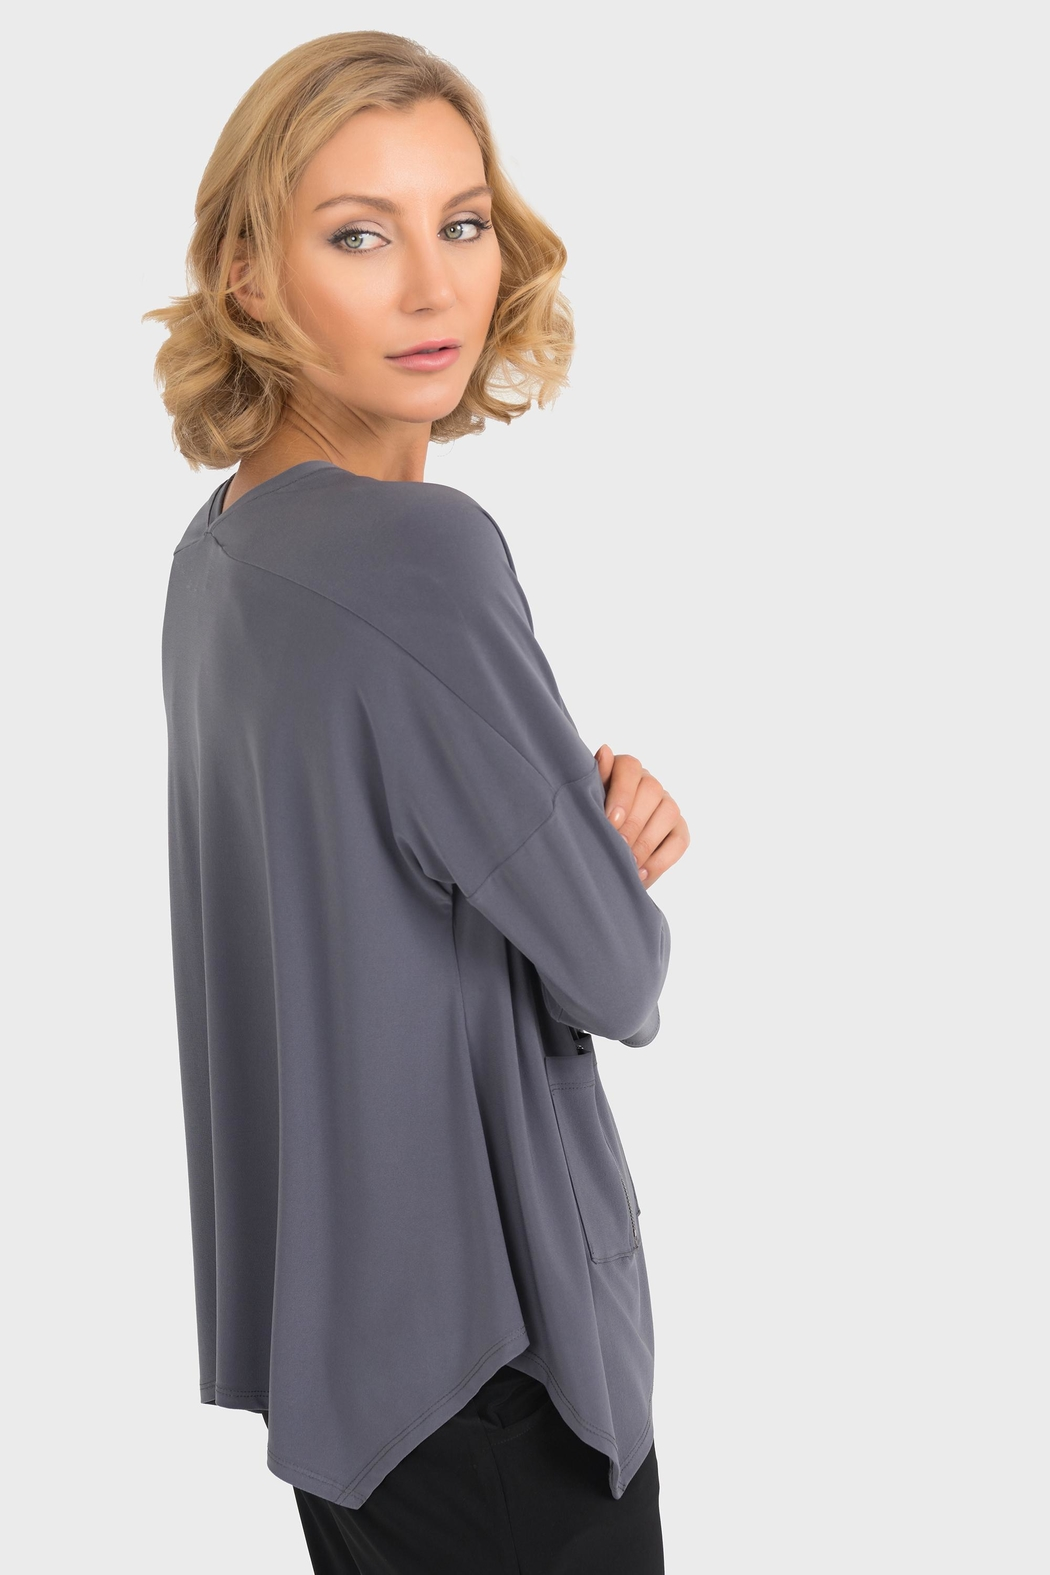 Joseph Ribkoff Smokey Grey Top - Side Cropped Image